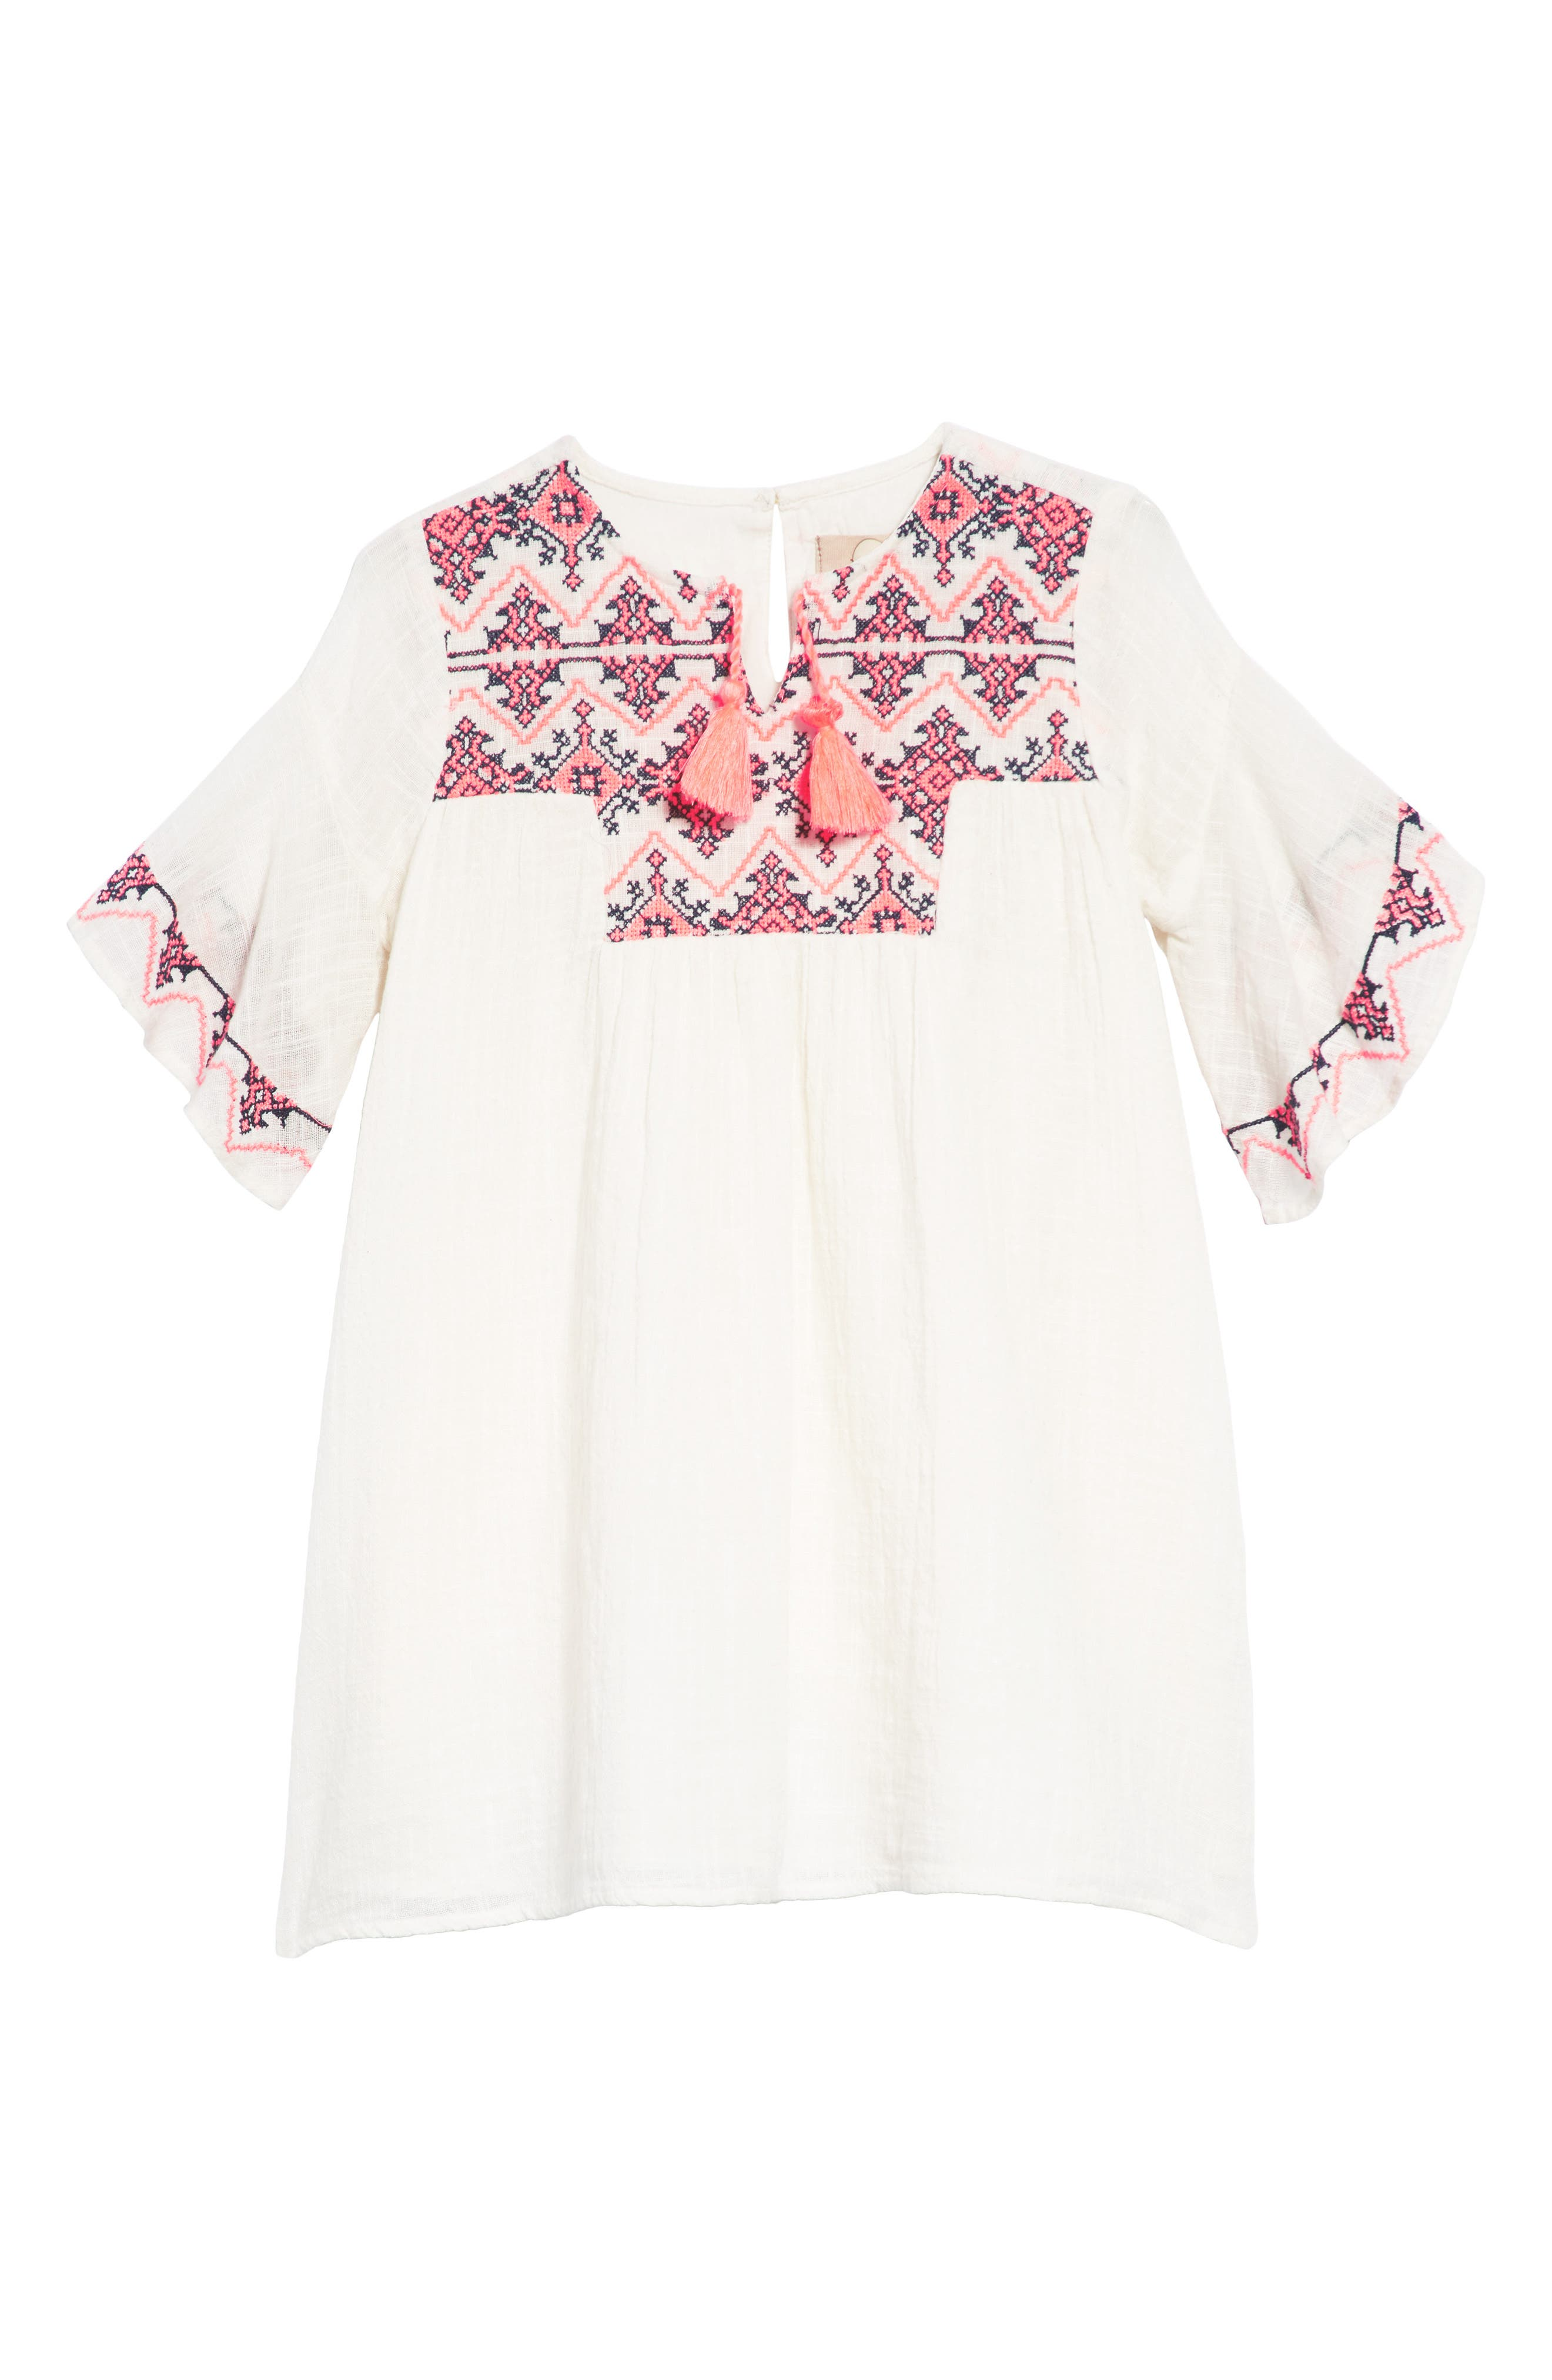 Ava Embroidered Shift Dress,                             Main thumbnail 1, color,                             White